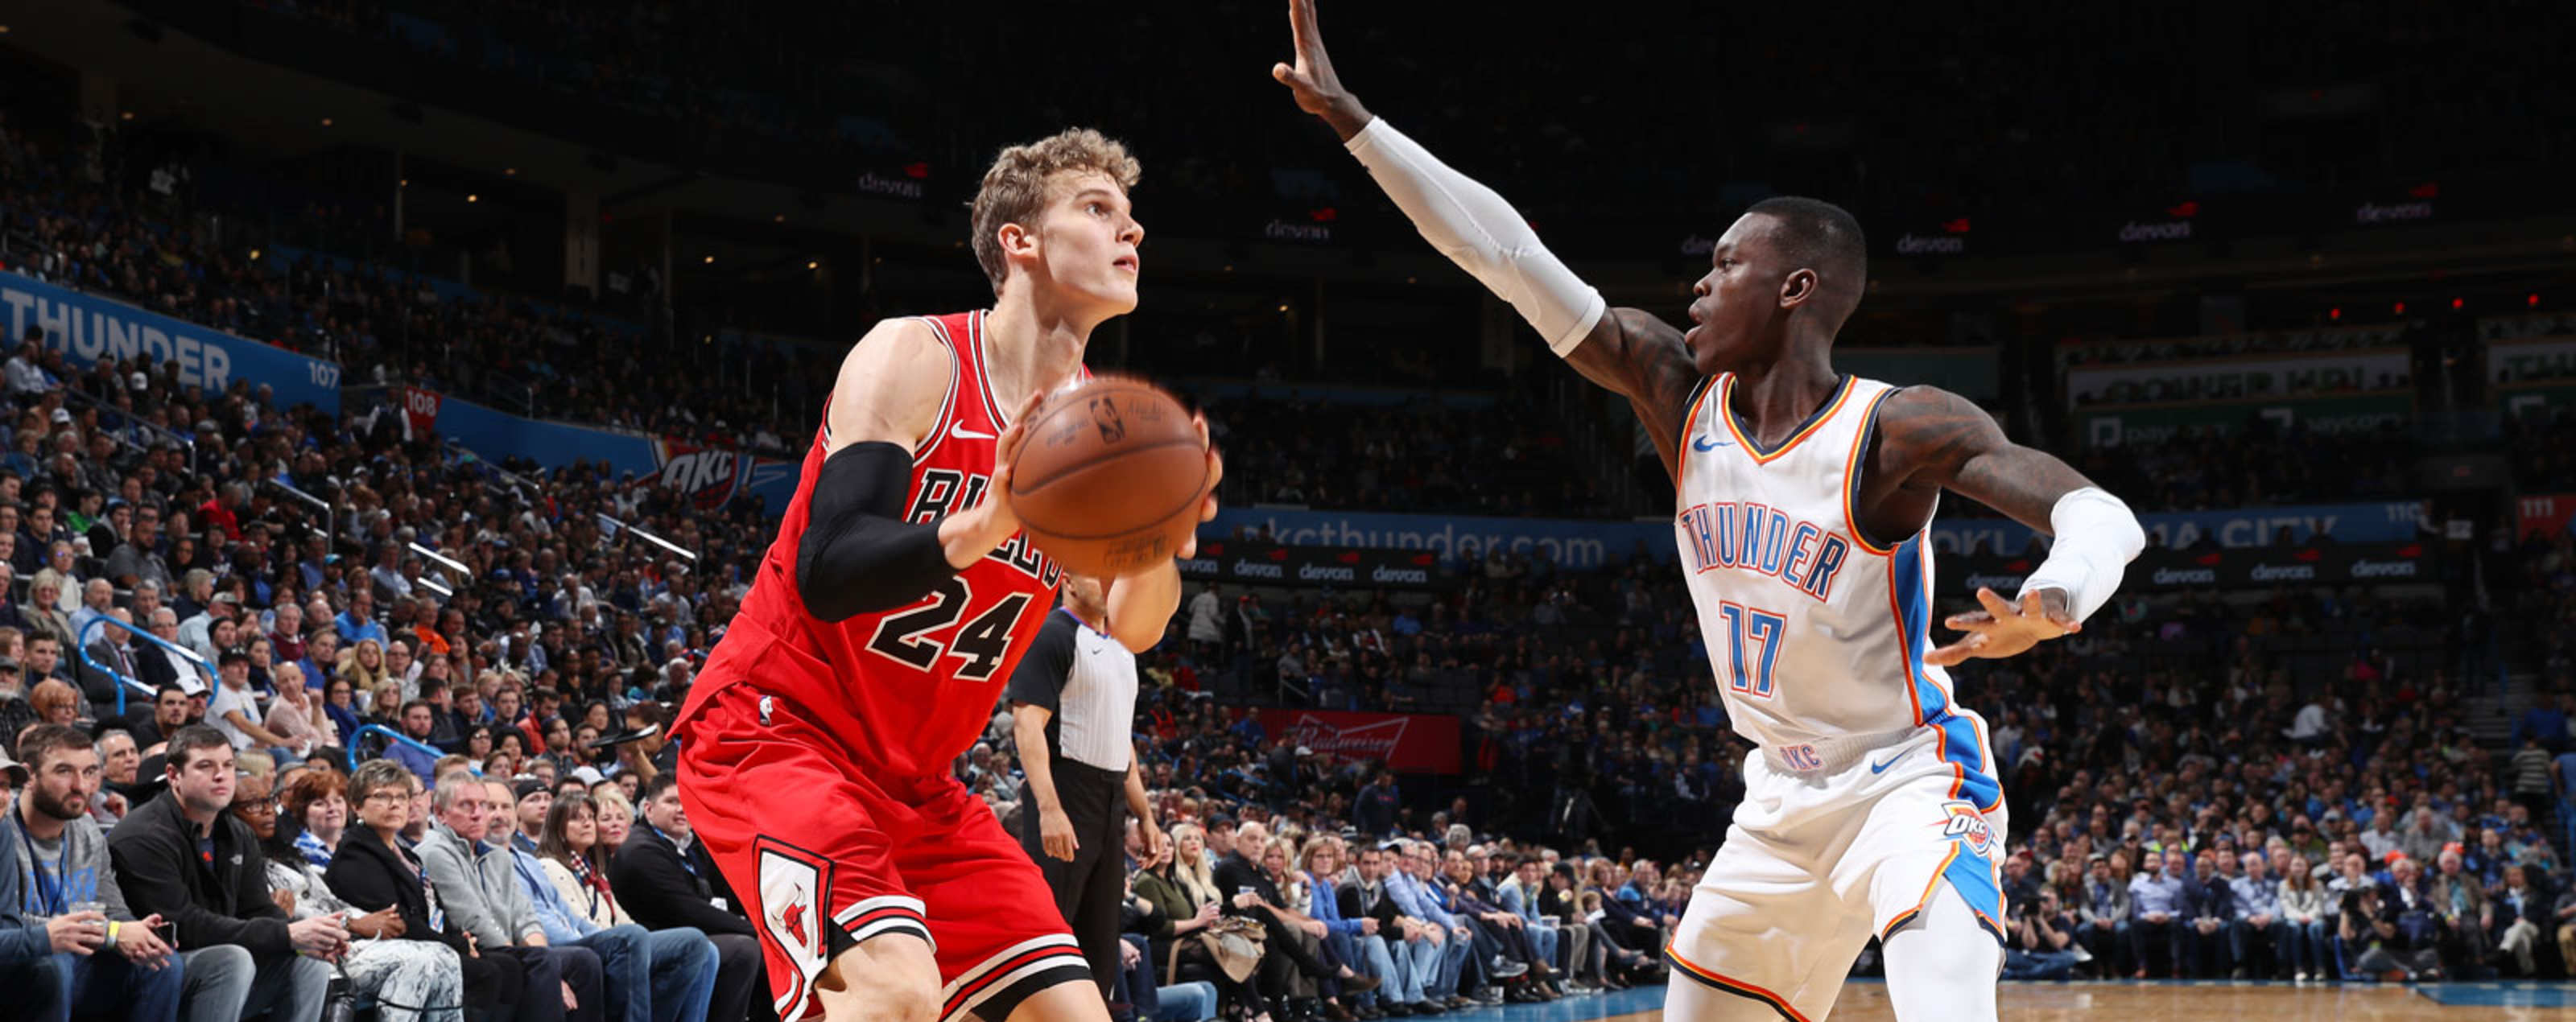 Lauri Markkanen #24 of the Chicago Bulls shoots the ball during the game against Dennis Schroder #17 of the Oklahoma City Thunder on December 17, 2018 at Chesapeake Energy Arena in Oklahoma City, Oklahoma.